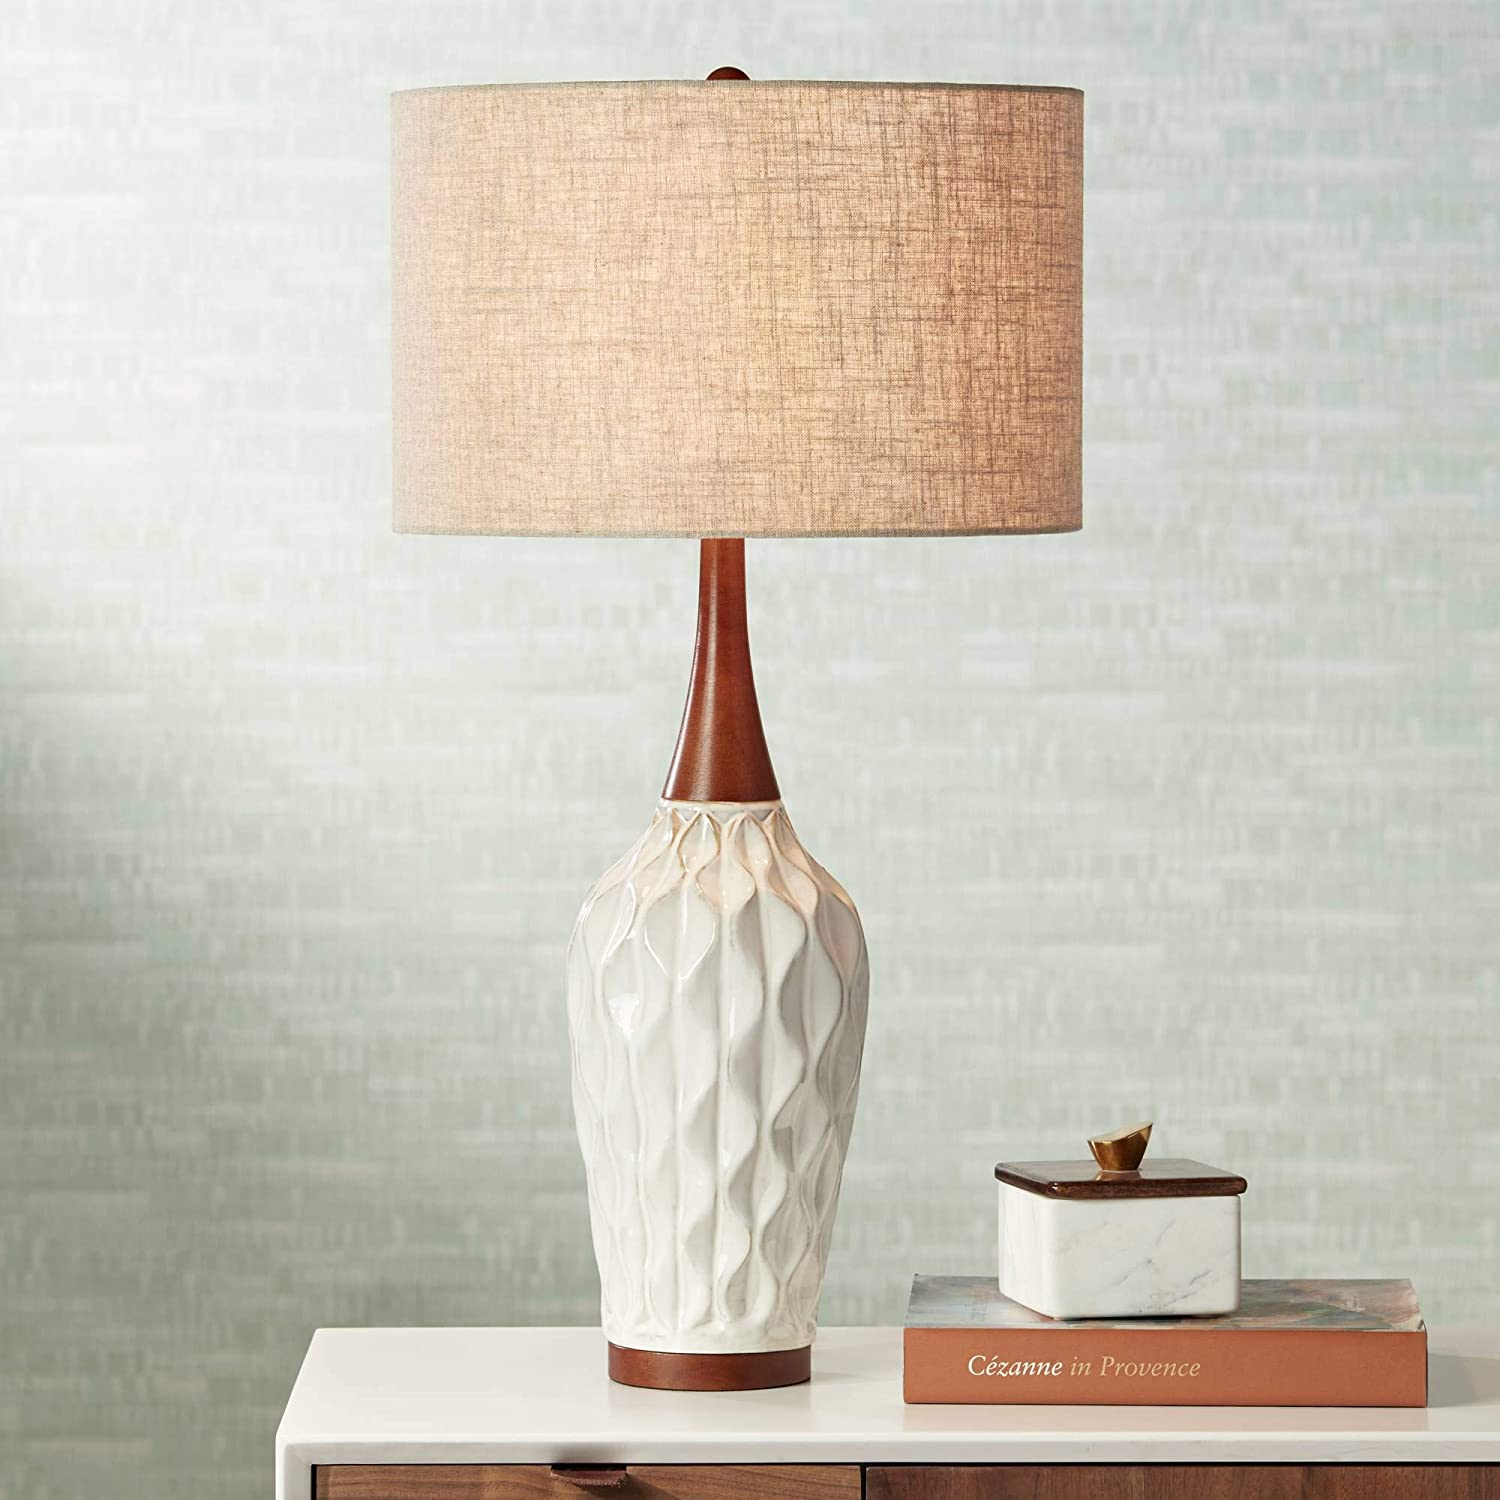 Rocco Mid Century Modern Table Lamp White Geometric Ceramic Wood Tan Fabric Drum Shade For Living Room Family Bedroom 360 Lighting